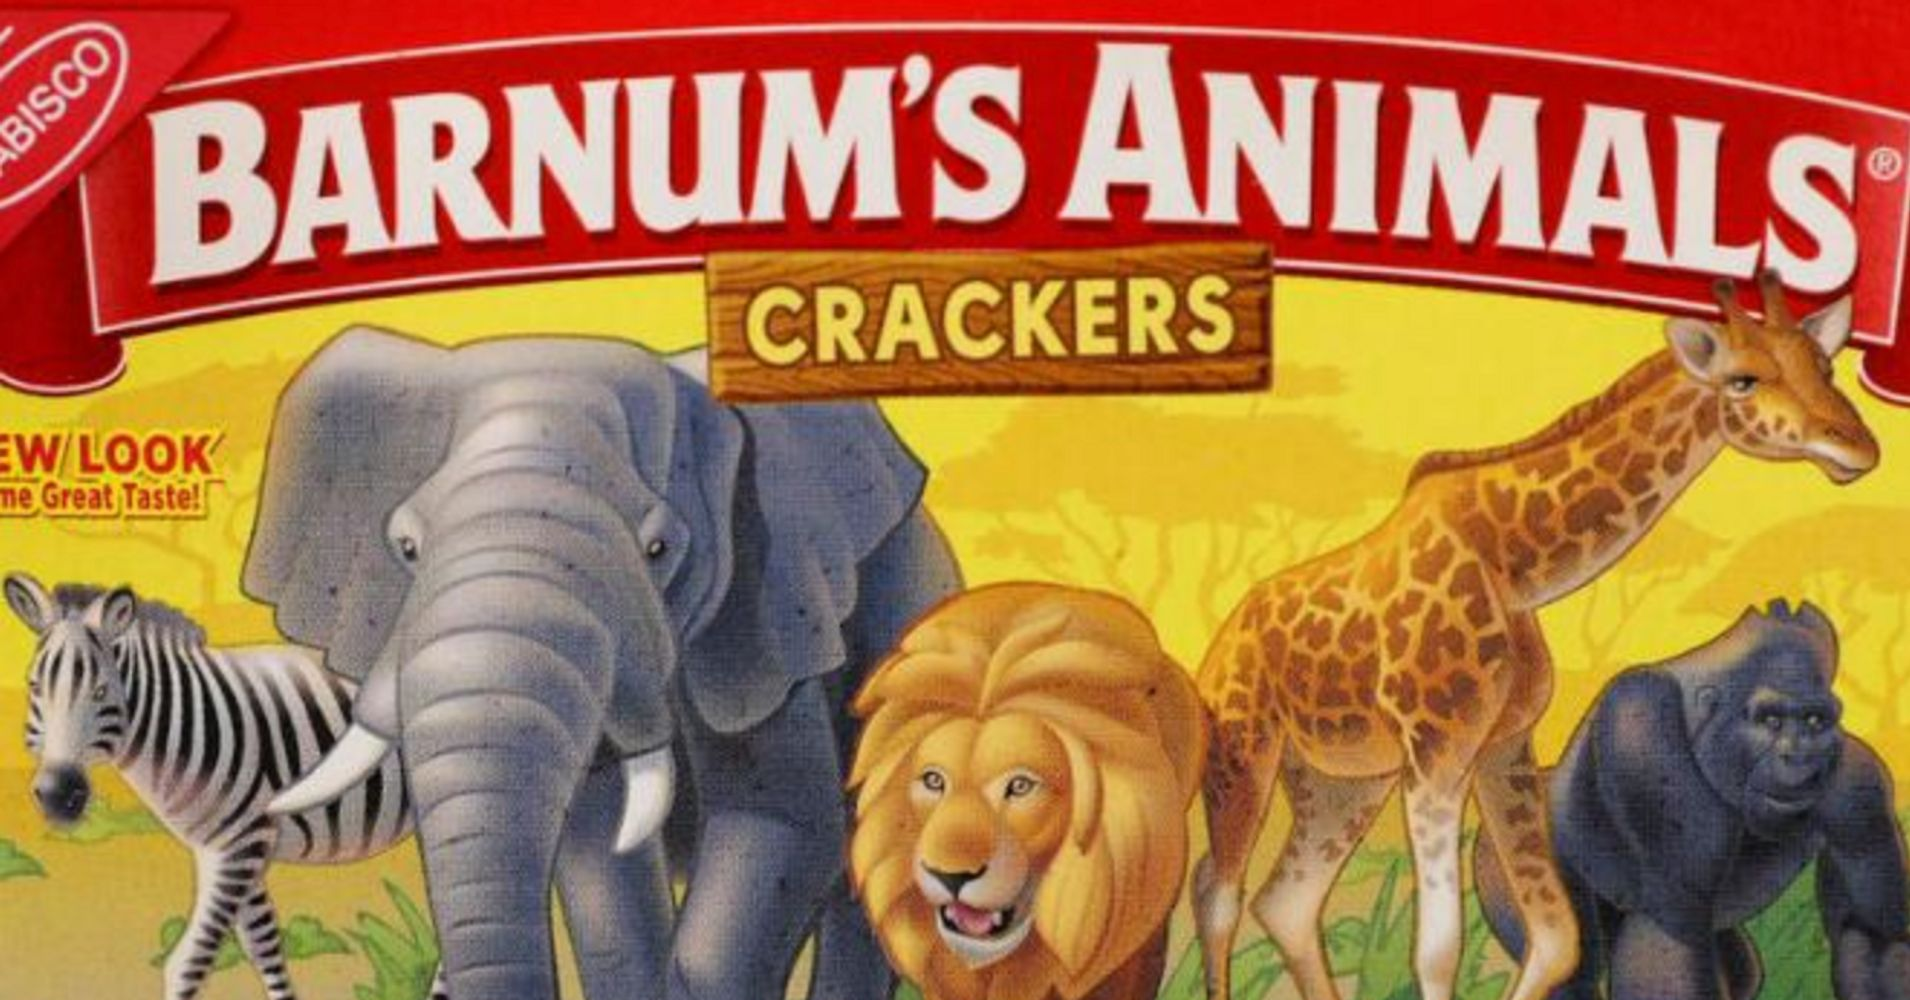 Animal Crackers Uncaged In Box Redesign After PETA Pressure